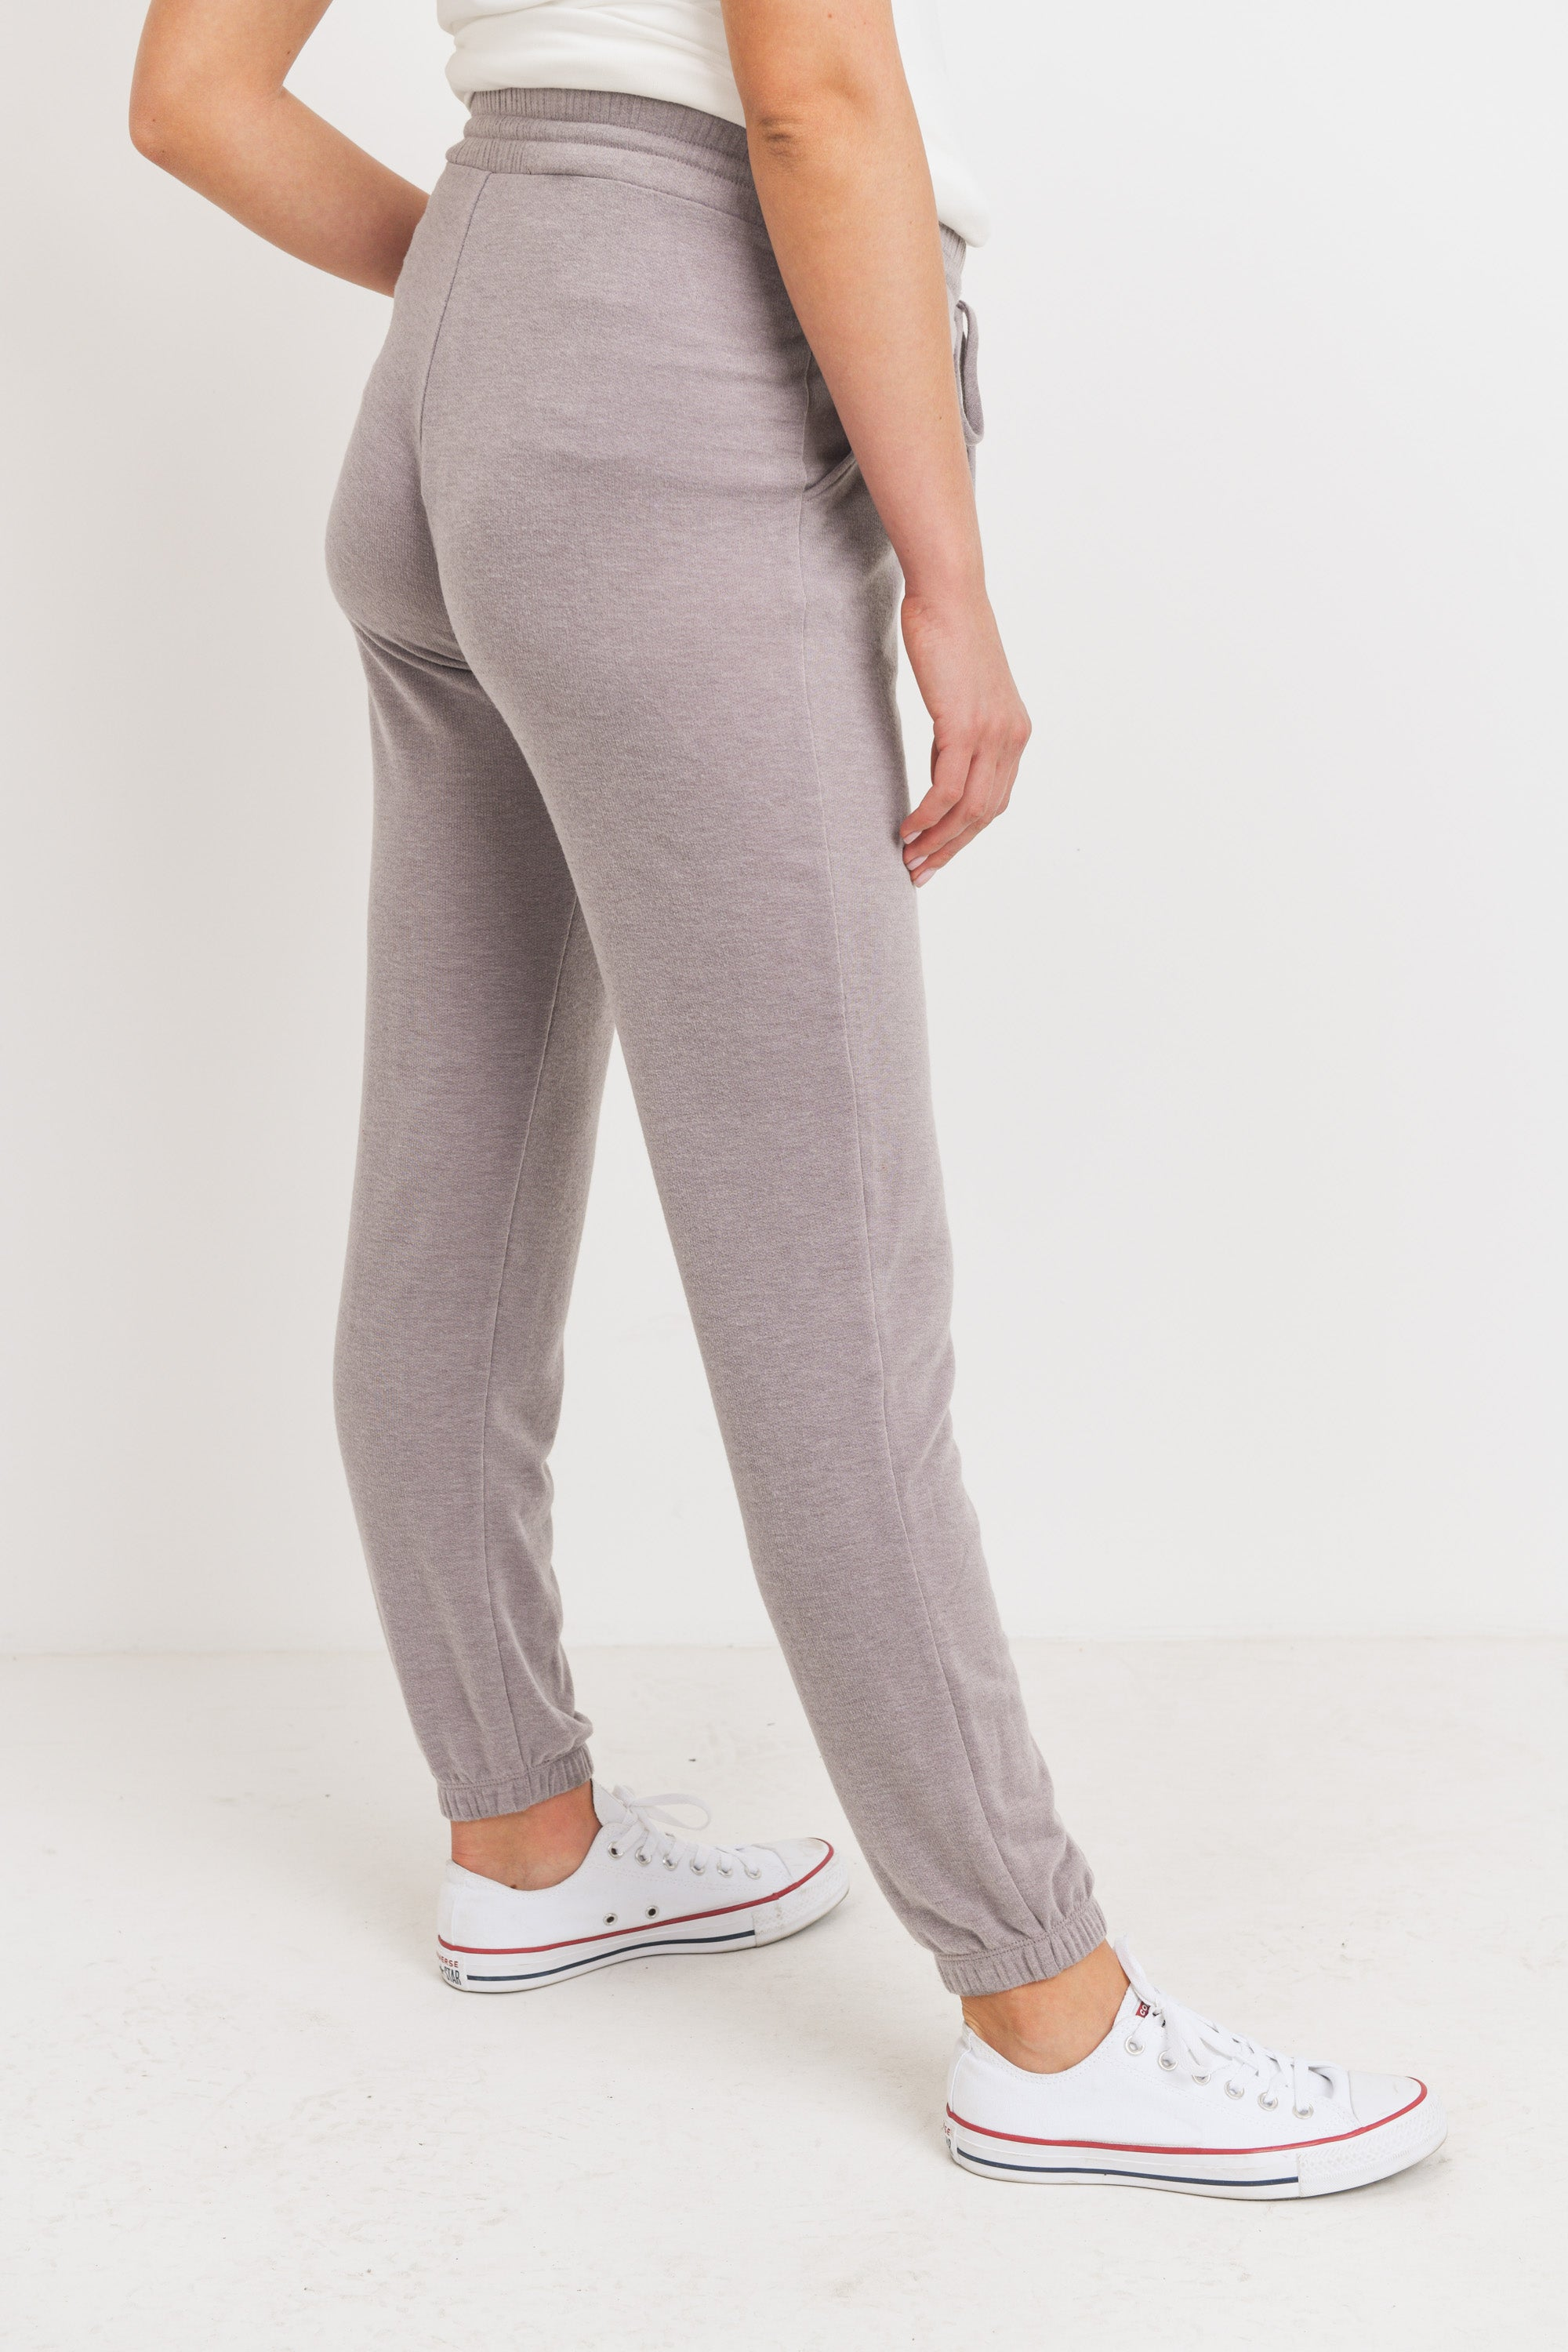 Two Toned Brushed Terry Maternity Sweatpants